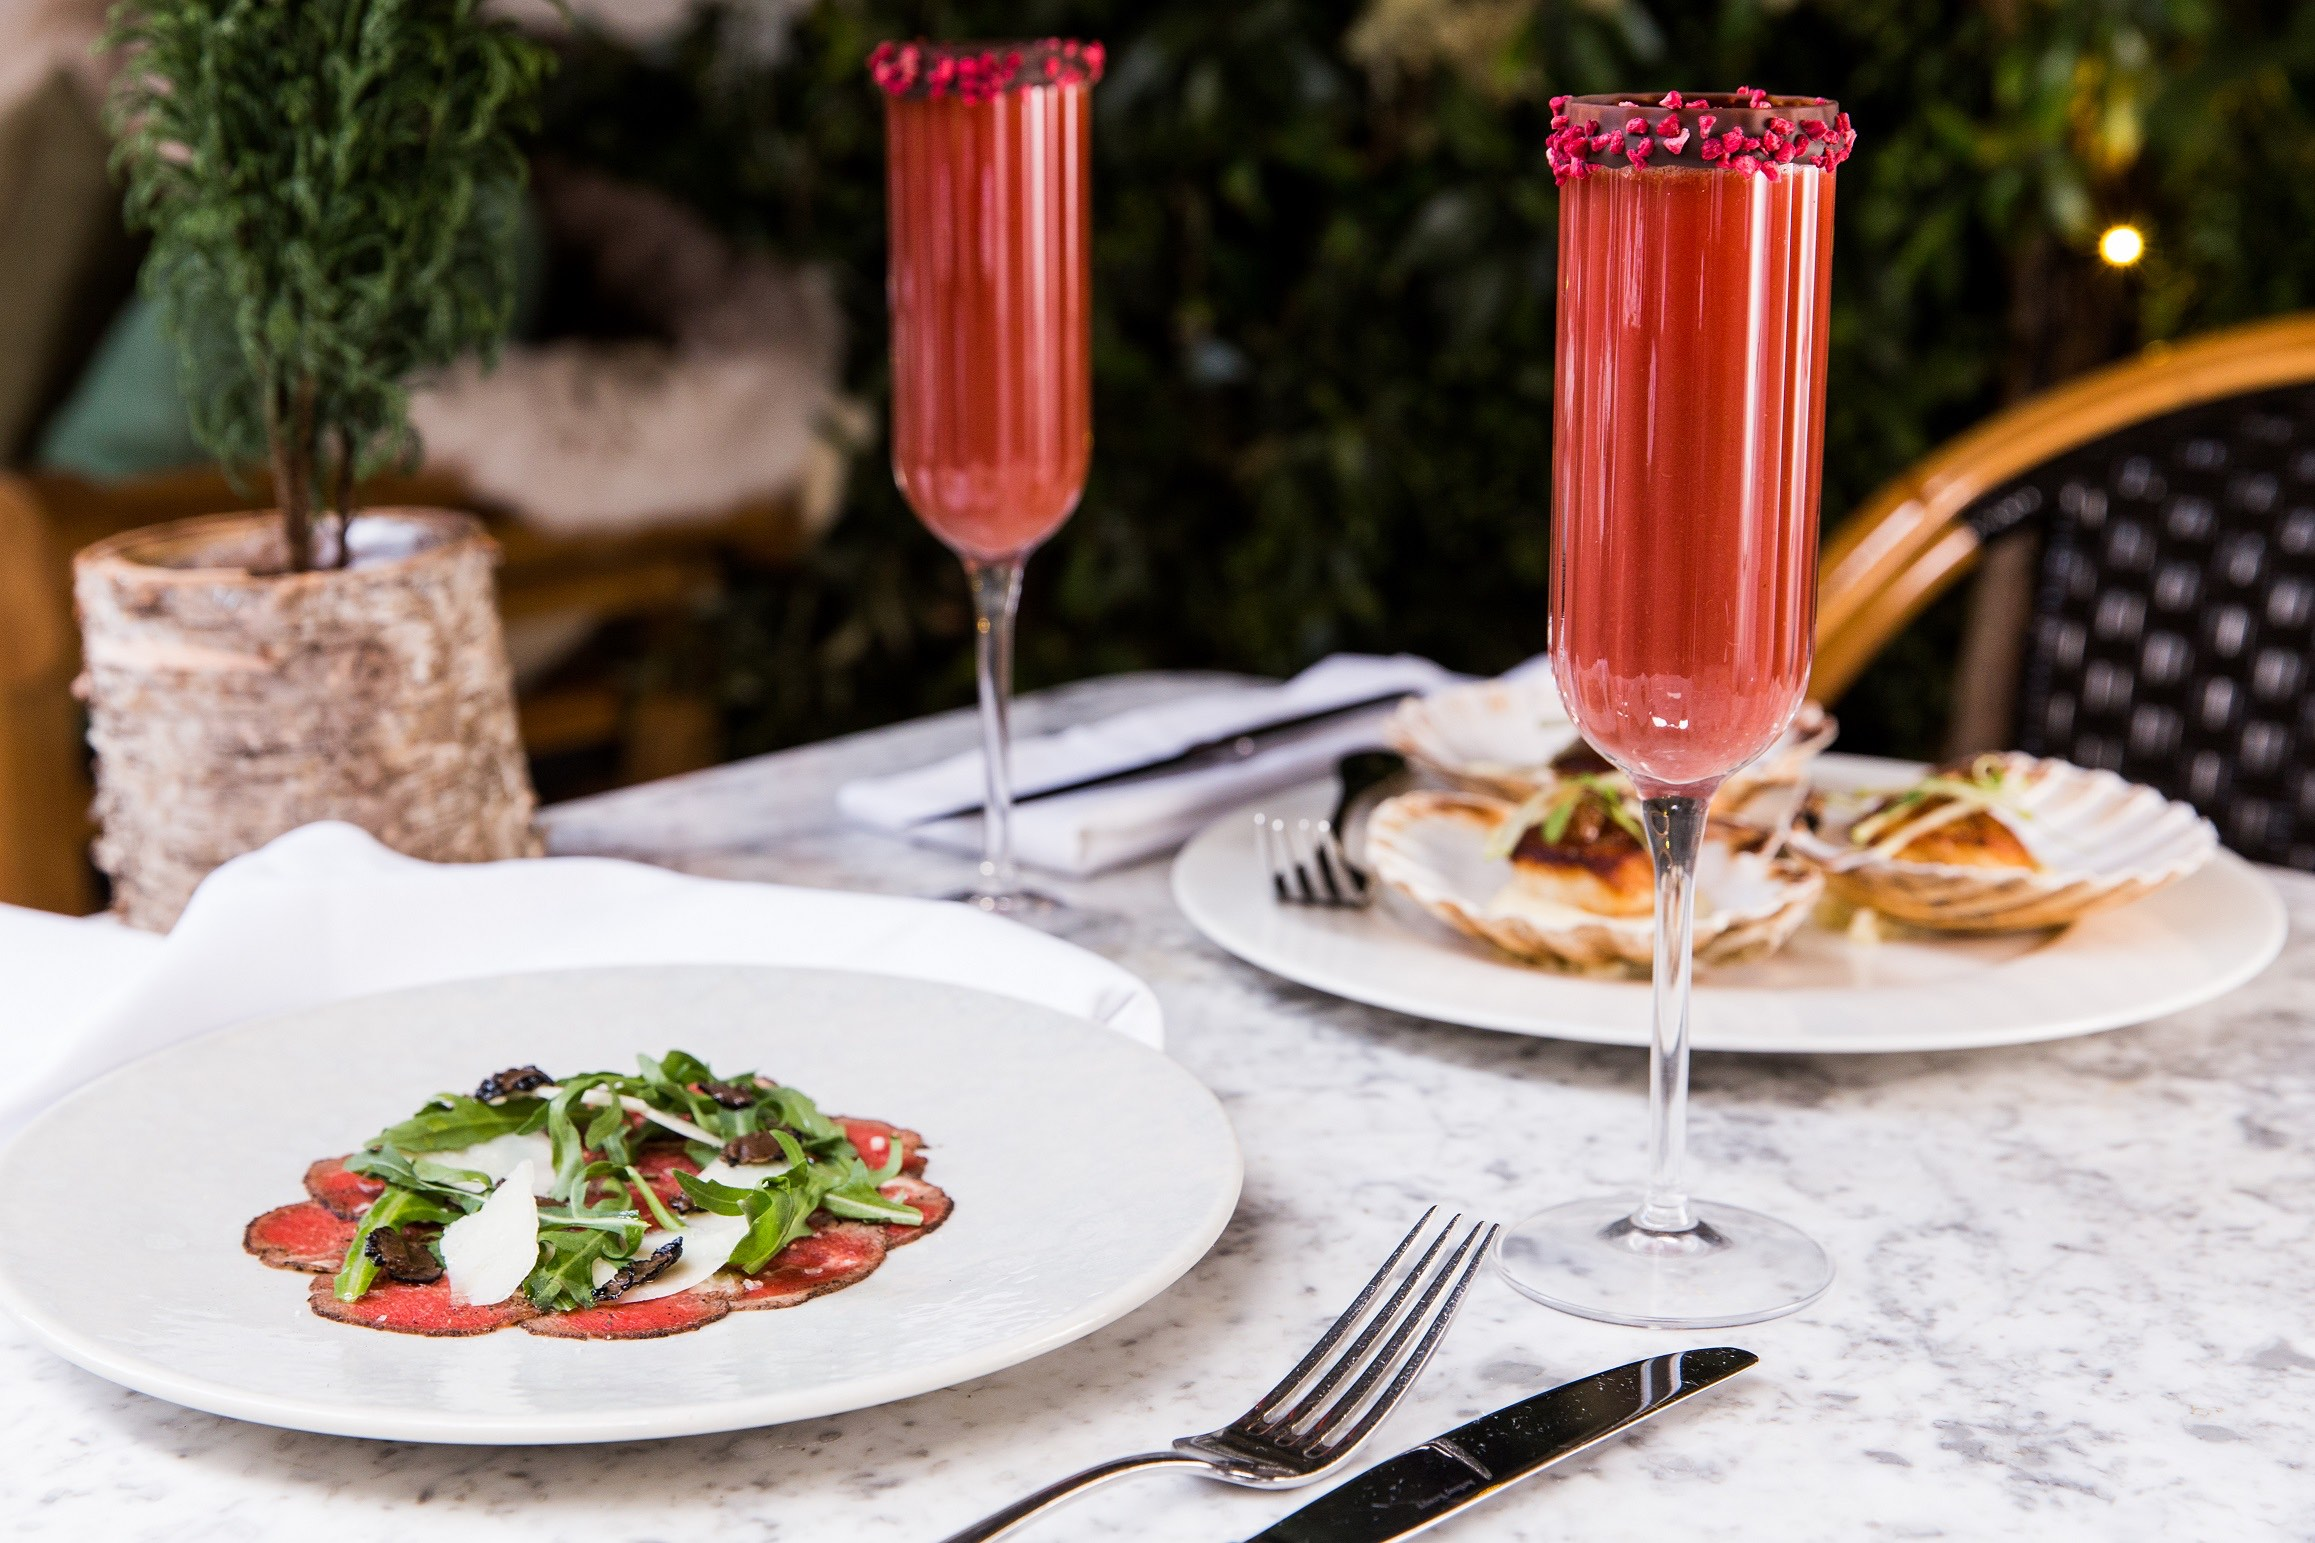 Top 20: Valentine's Day Set Menus in London, Top 20: Valentine's Day Menus in London, Valentine's Day Menus in London, Valentine's Day Menus in London 2018, valentine's day 2018 in London